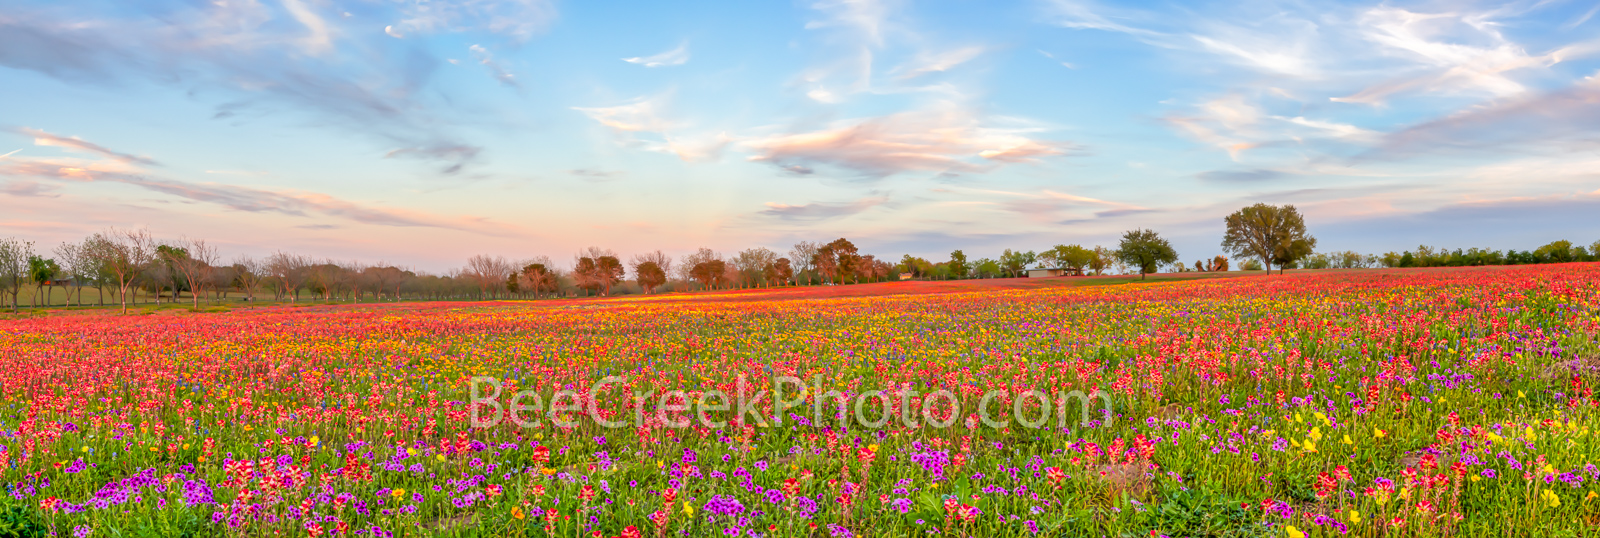 wildflowers, texas wildflowers, bluebonnets, indian paintbrush, yellow daisys, phlox, texas, central texas, south texas, floral, flowers, plants, colorfuwildflowers, backroads, pano, panorama, vibrant, photo